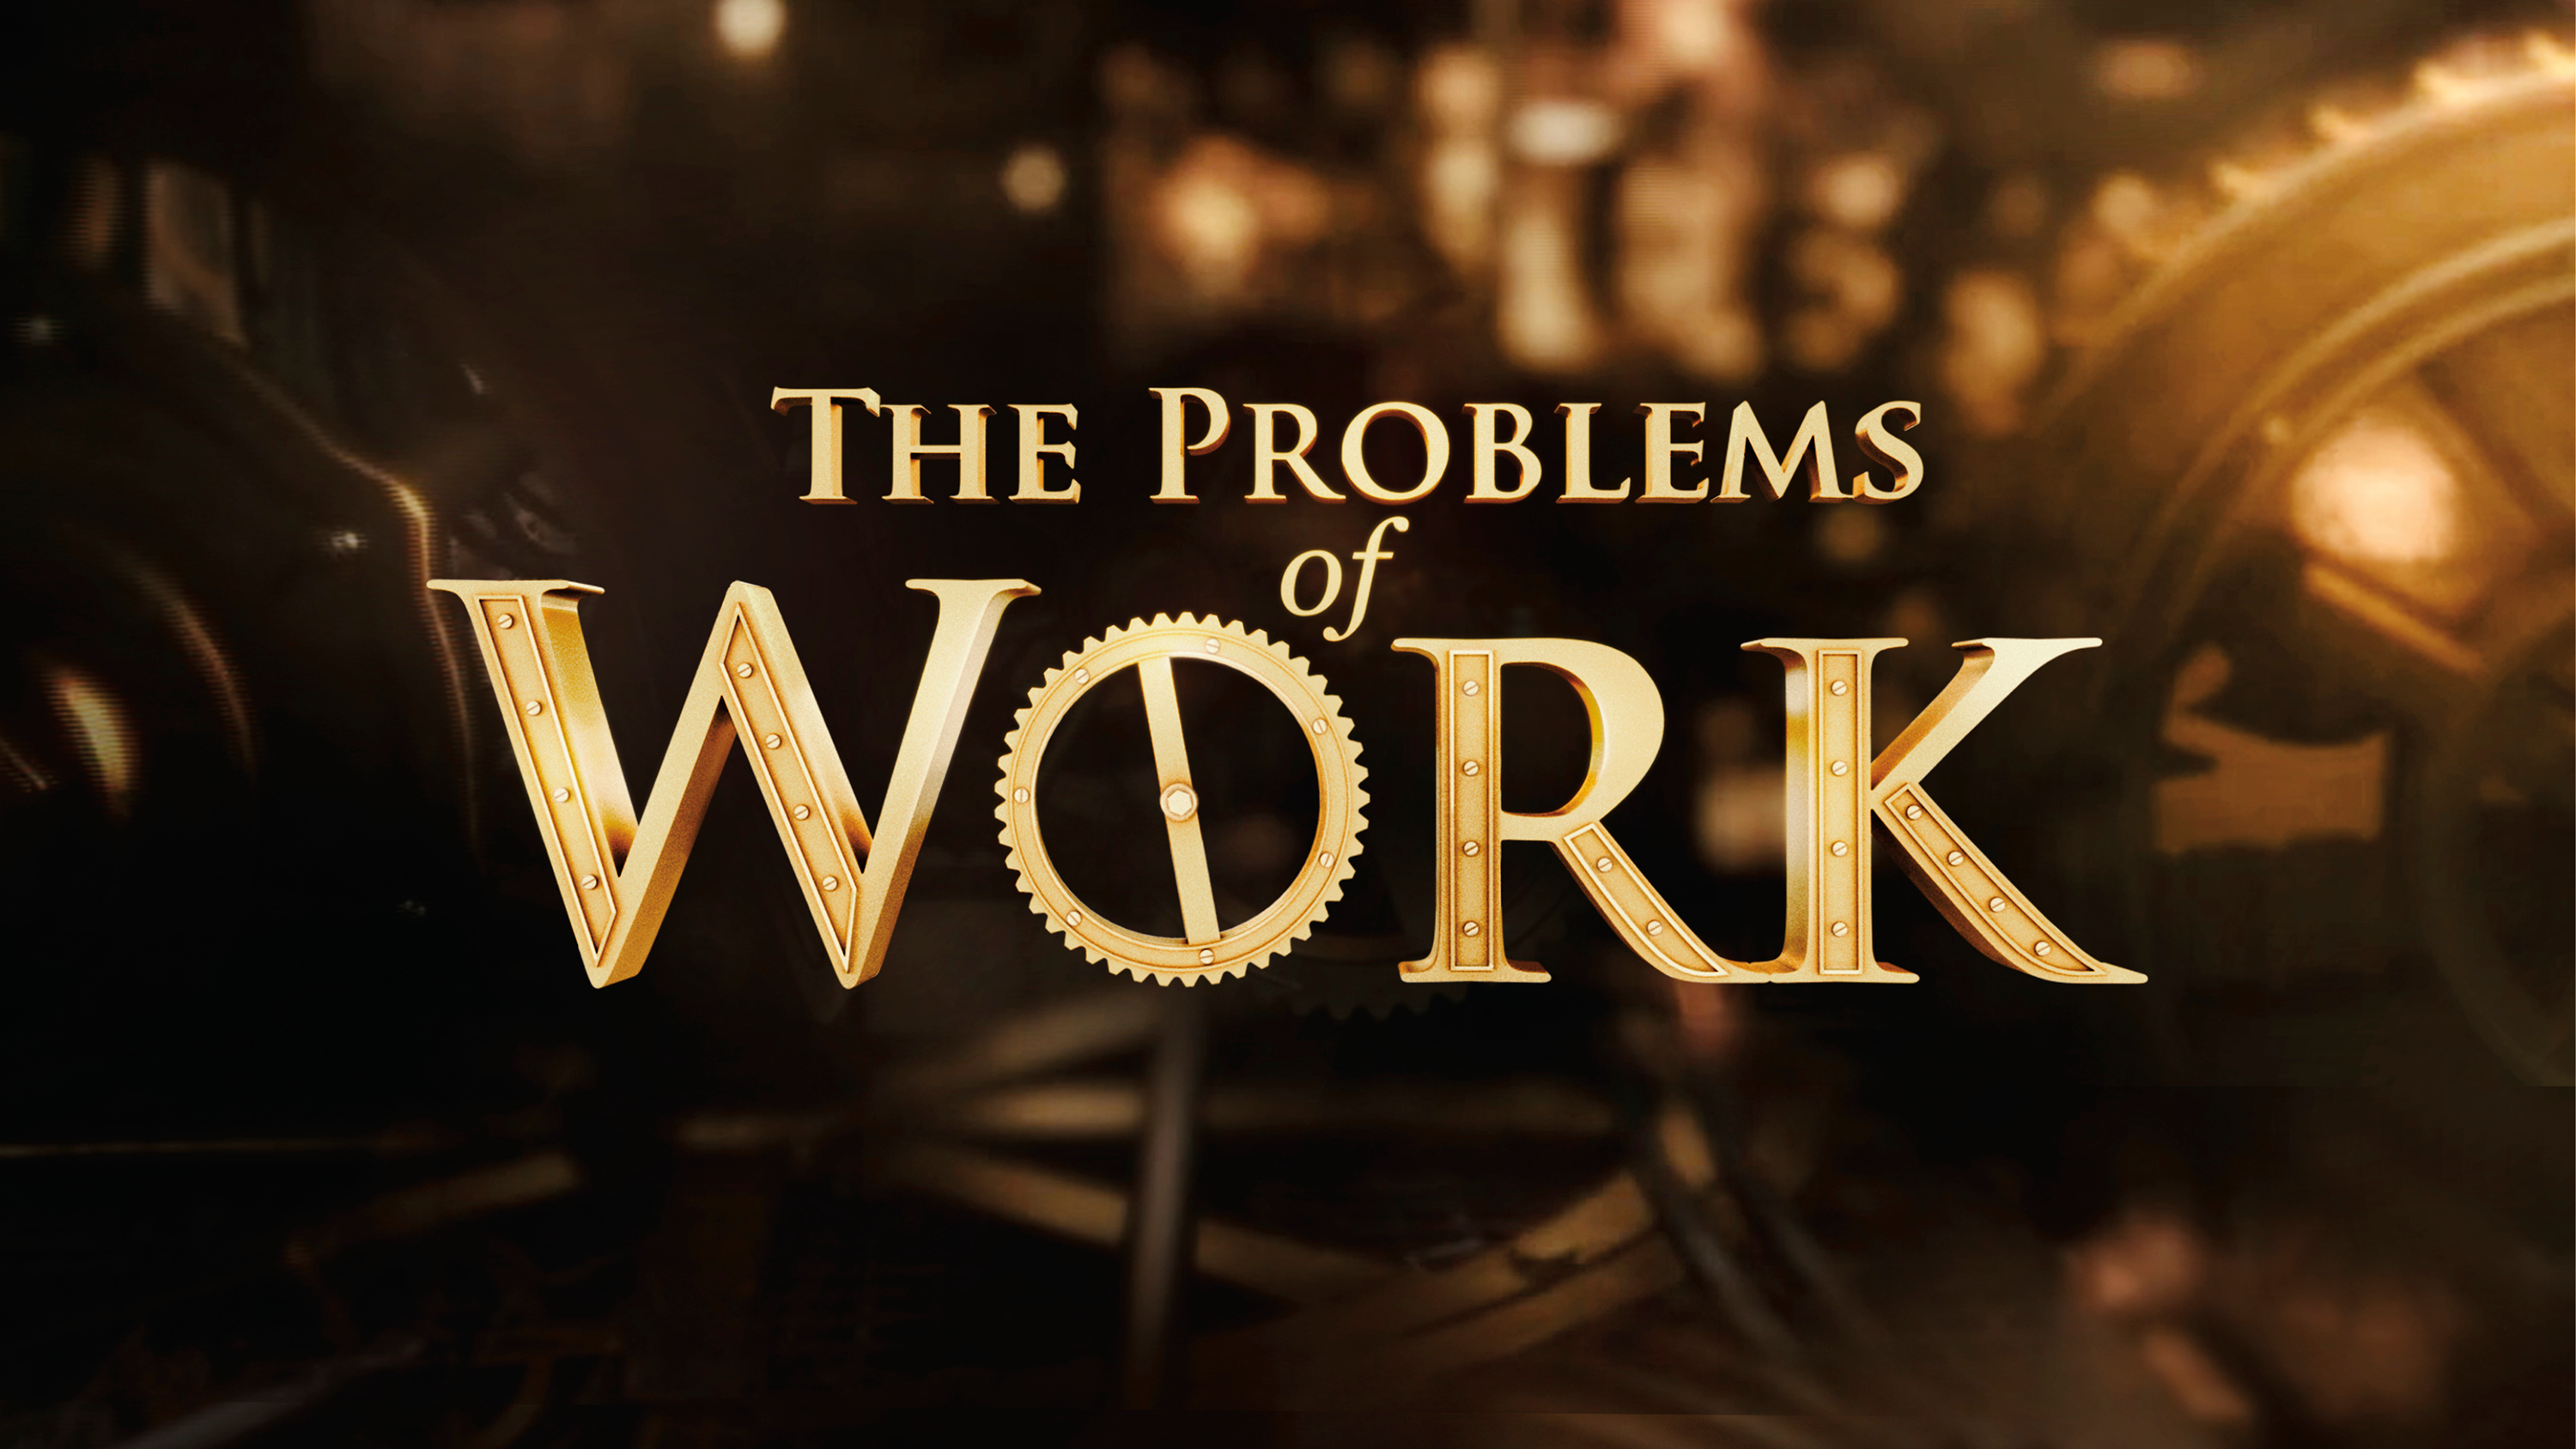 the problems of work scientology applied to the workaday world